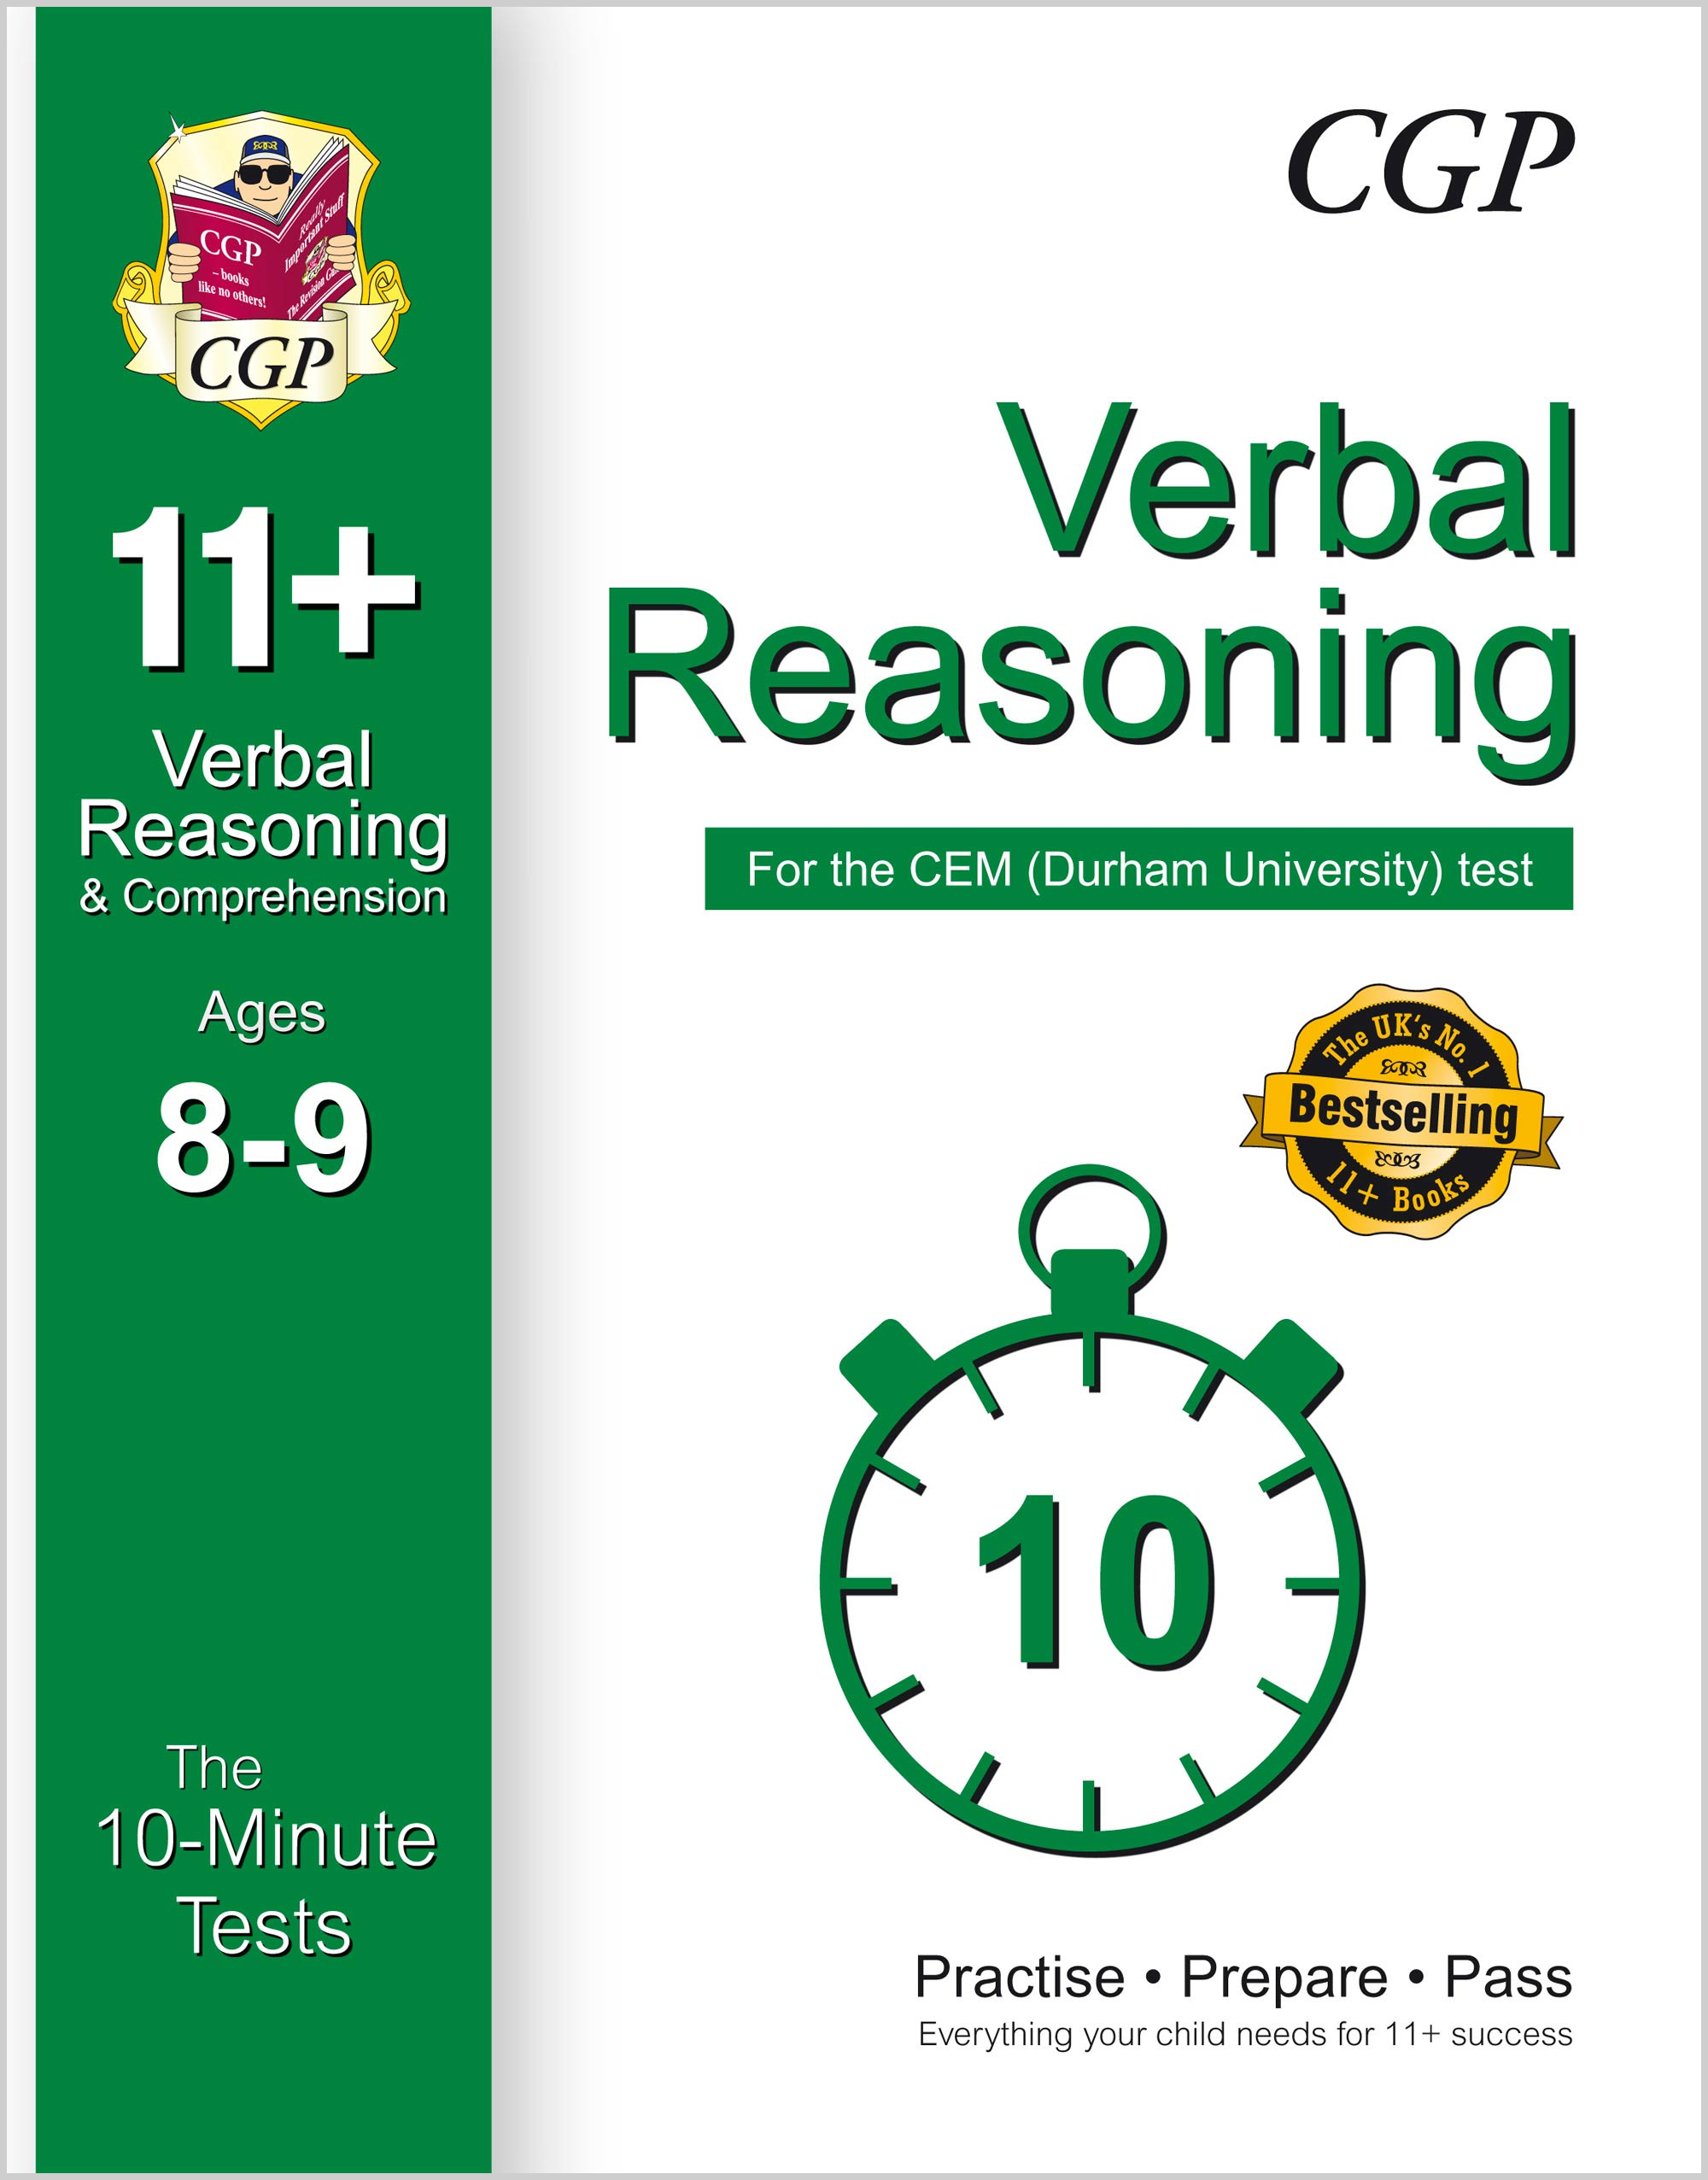 V4XPDE1 - 10-Minute Tests for 11+ Verbal Reasoning Ages 8-9 - CEM Test